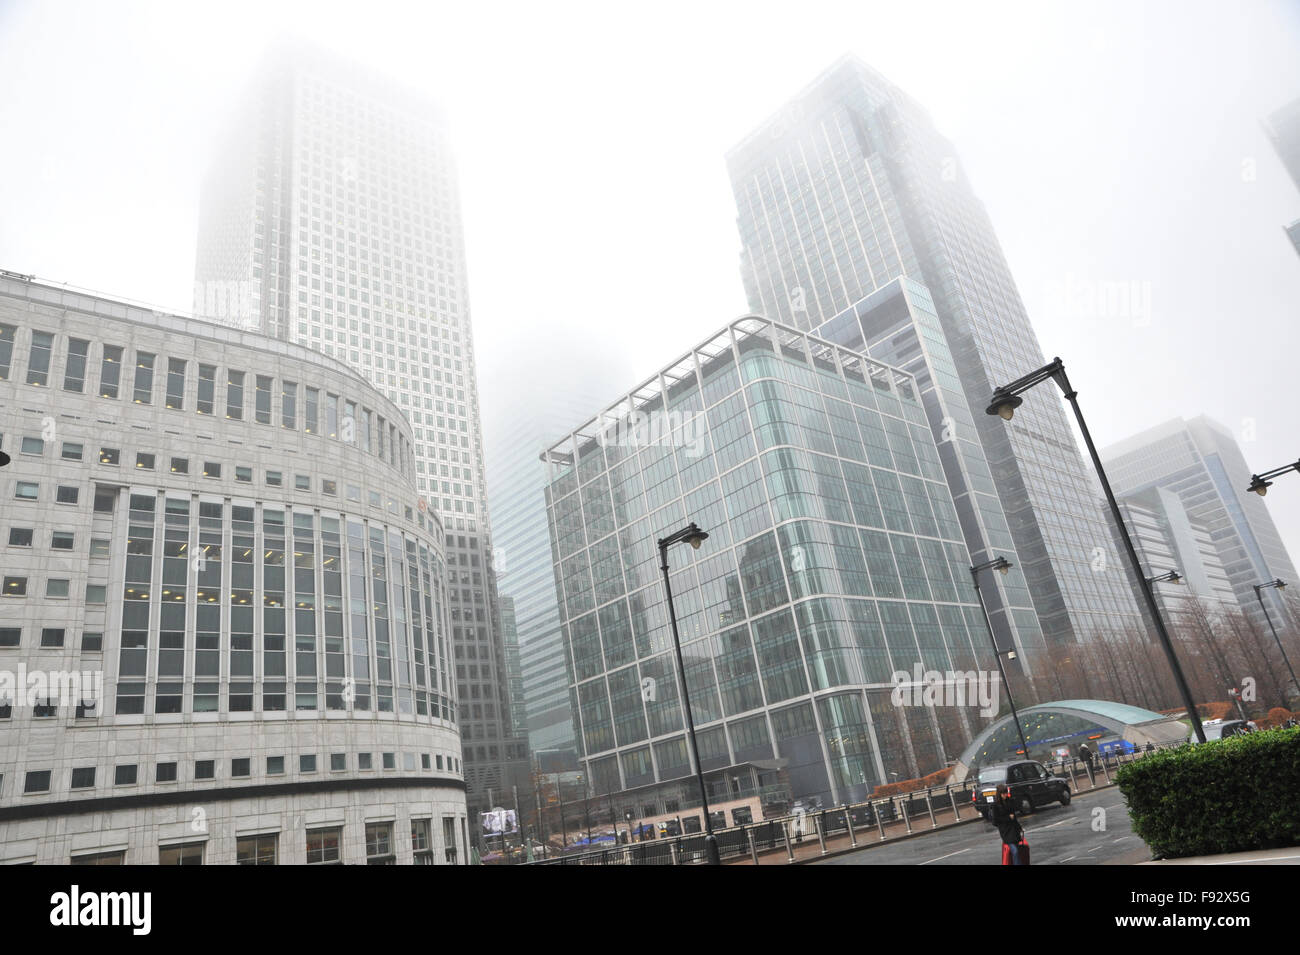 Canary Wharf, London, UK. 13th December 2015. UK Weather: Misty, murky weather in Canary Wharf Credit:  Matthew Stock Photo